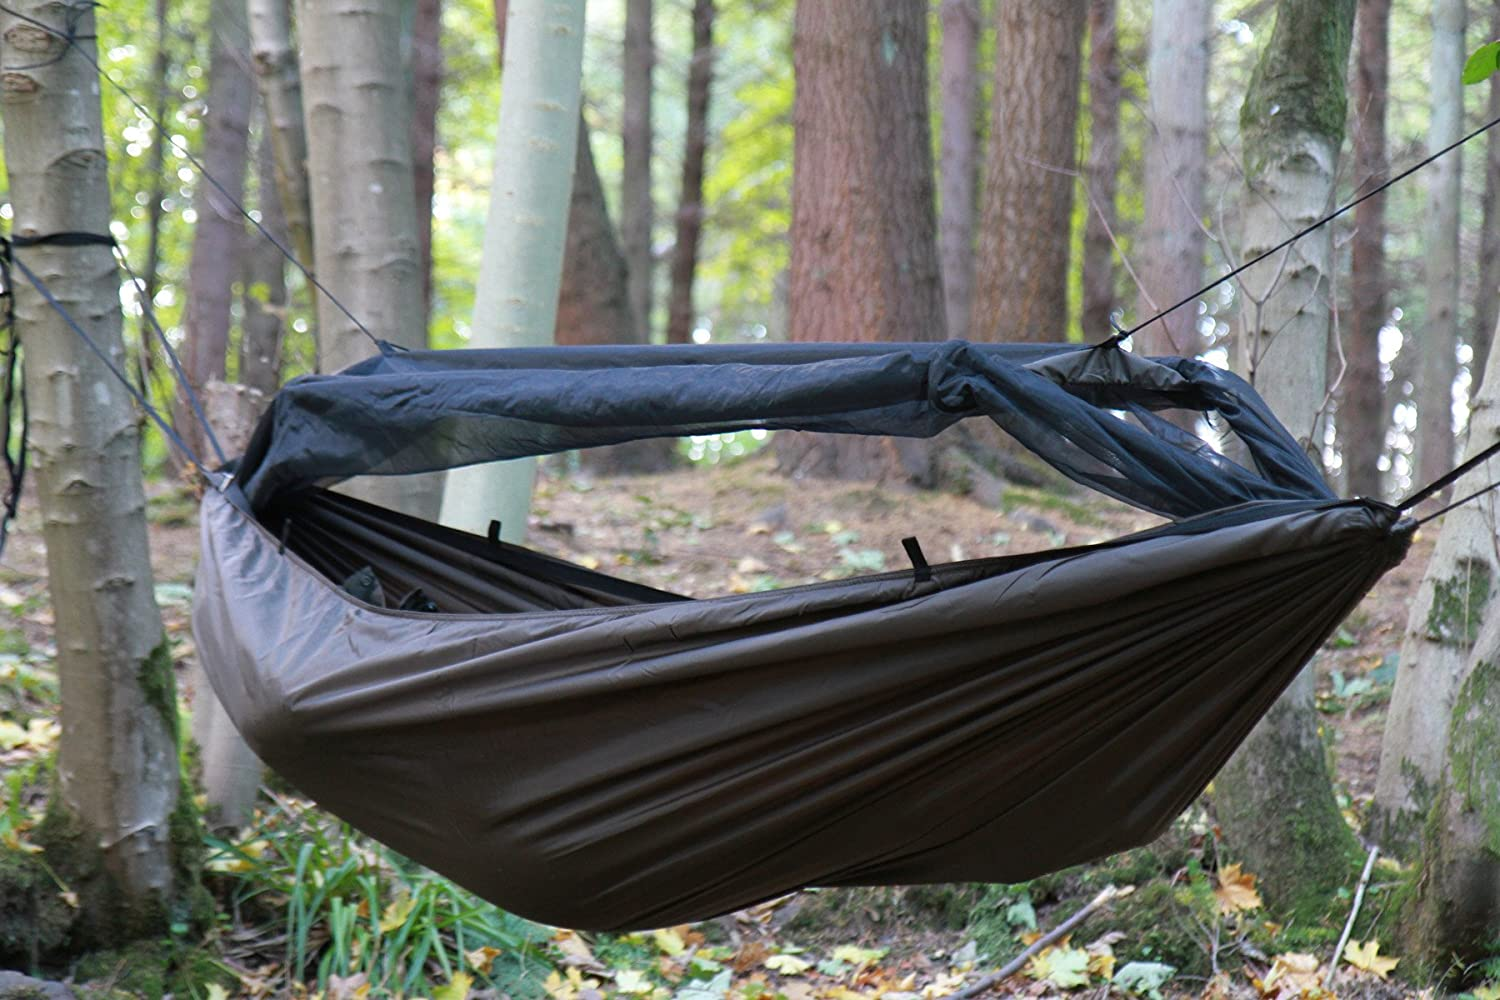 amazon     dd frontline hammock   lightweight camping jungle hammock with mosquito    olive green    garden  u0026 outdoor amazon     dd frontline hammock   lightweight camping jungle      rh   amazon